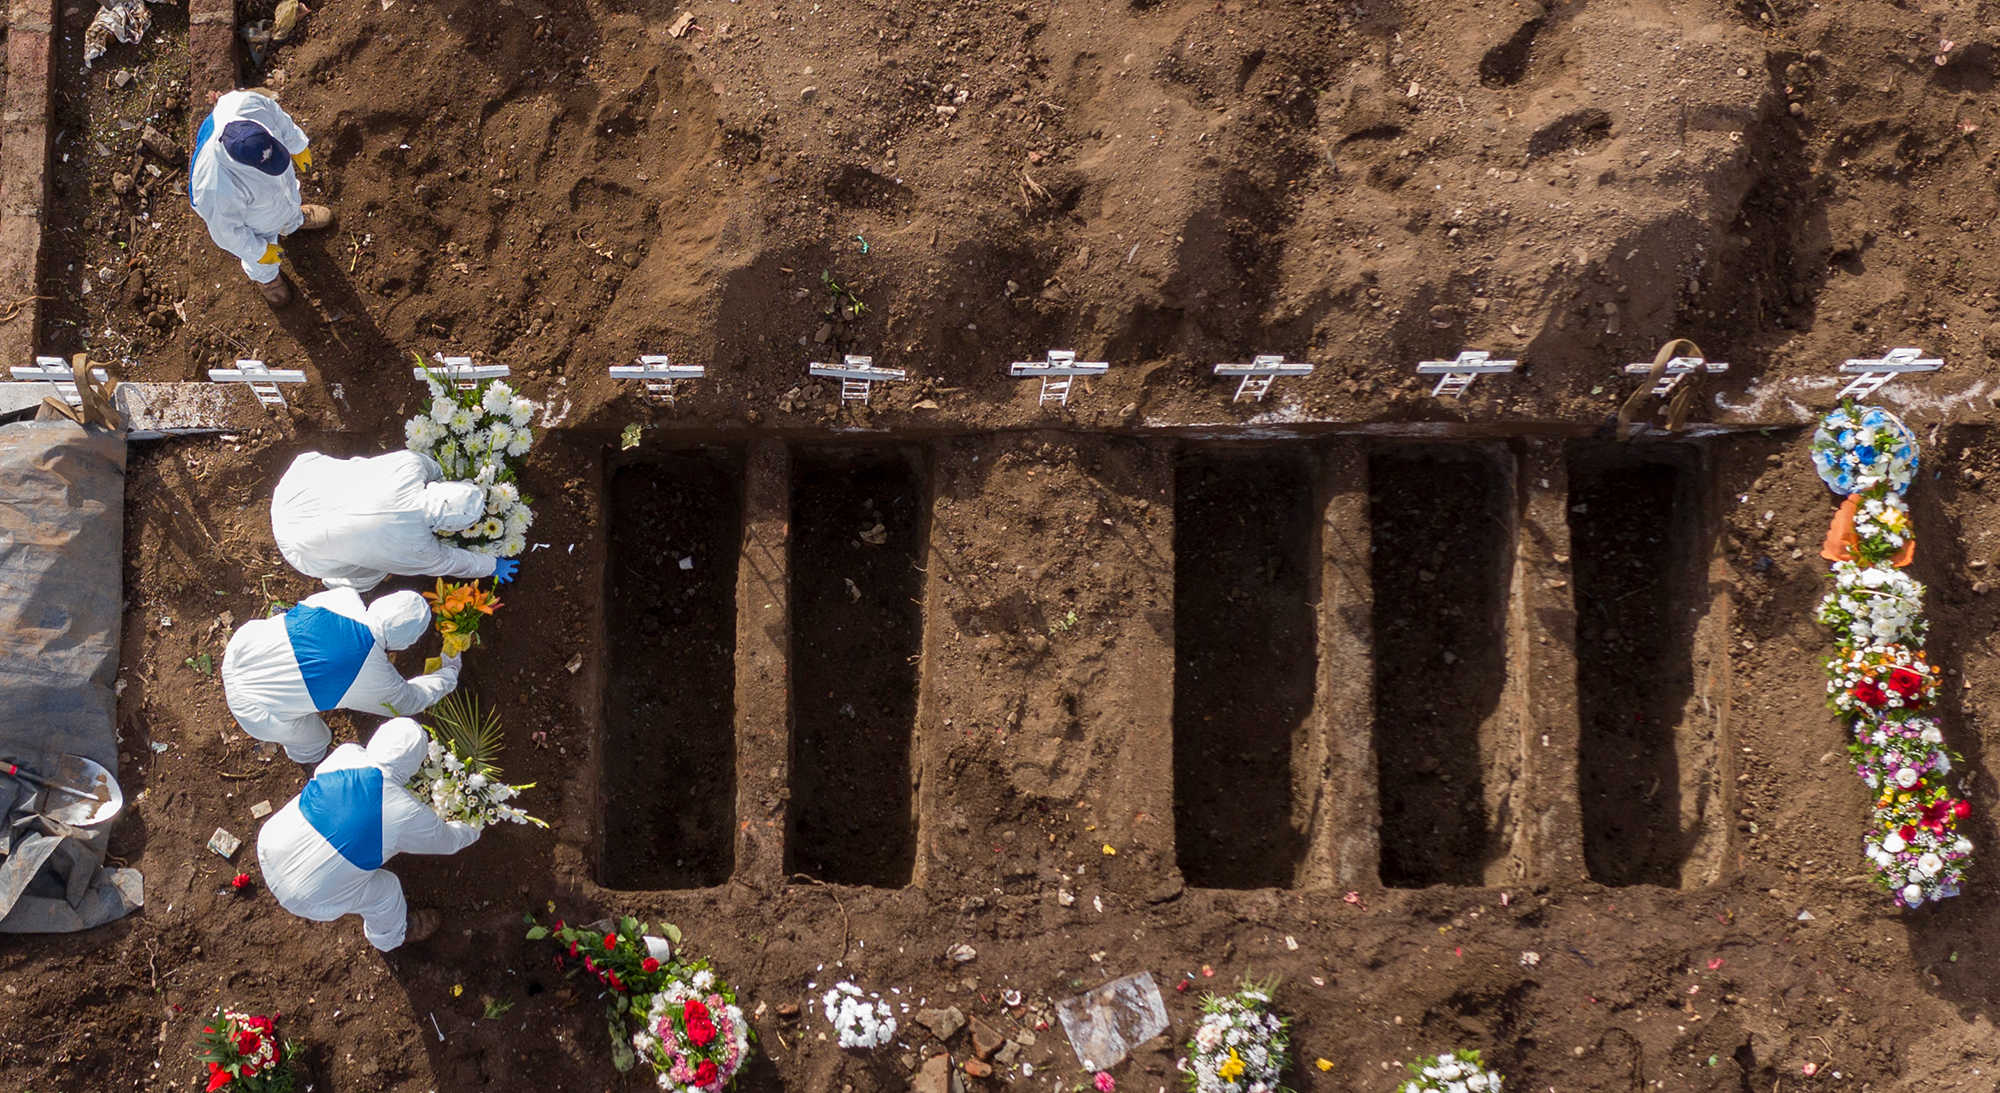 Aerial view showing the burial of a victim of COVID-19 at the General Cemetery in Santiago, Chile on June 23, 2020